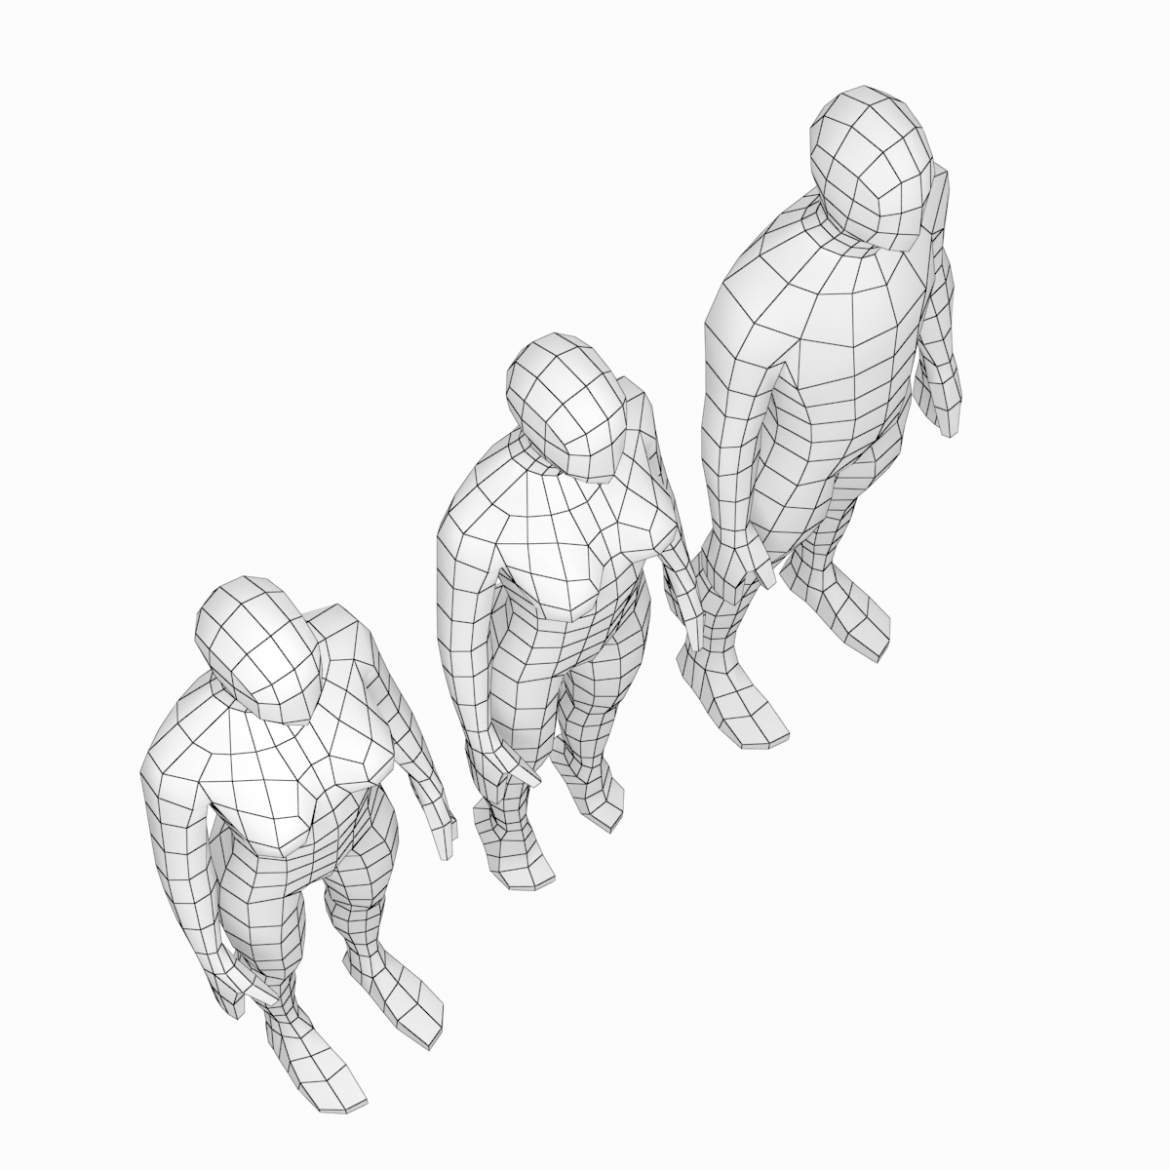 male and female low poly base mesh in rest pose 3d model 3ds max fbx c4d ma mb obj 301235